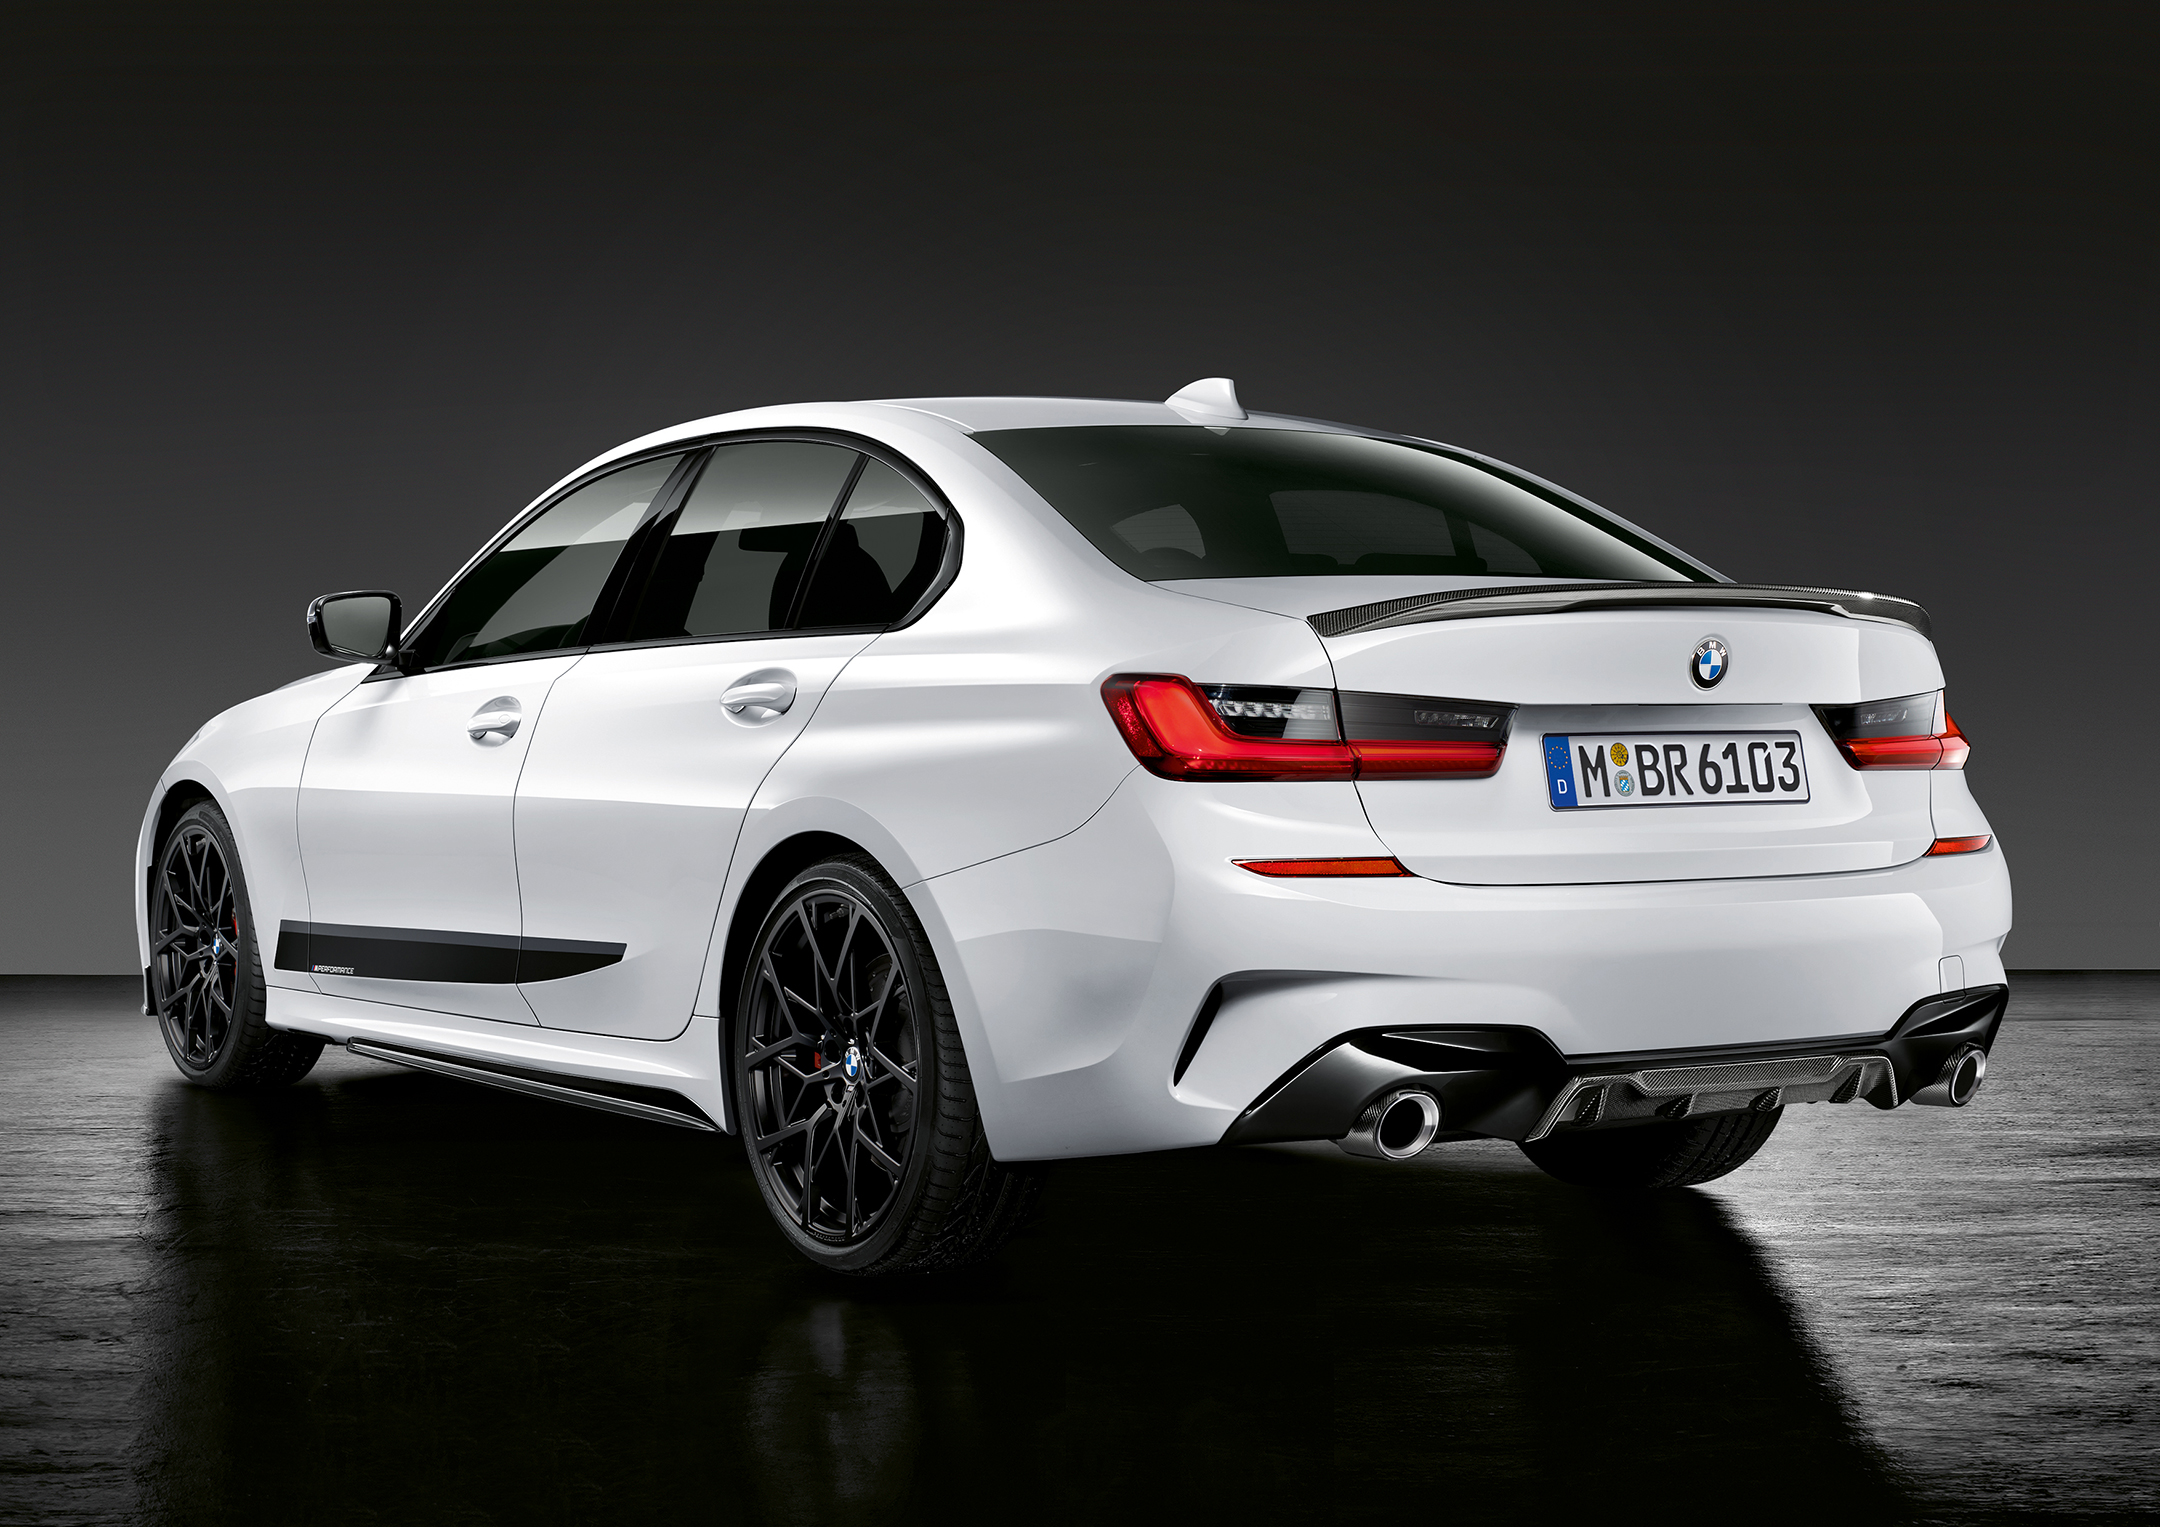 BMW Serie 3 Berline M Performance - 2018 - rear side-face / profil arrière